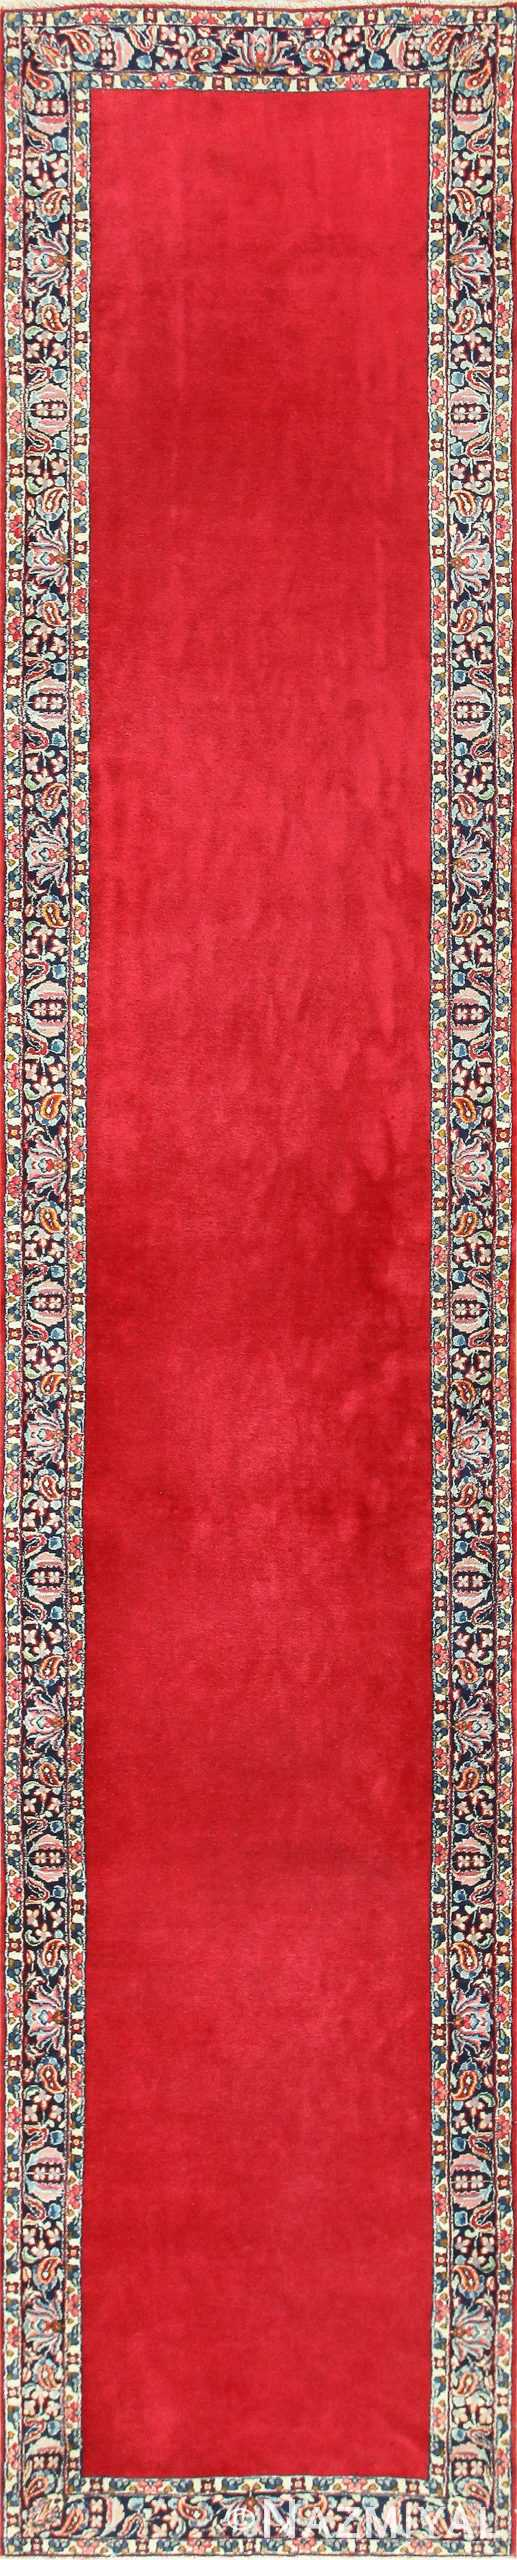 Antique Persian Floral Kerman Rug 50349 Nazmiyal